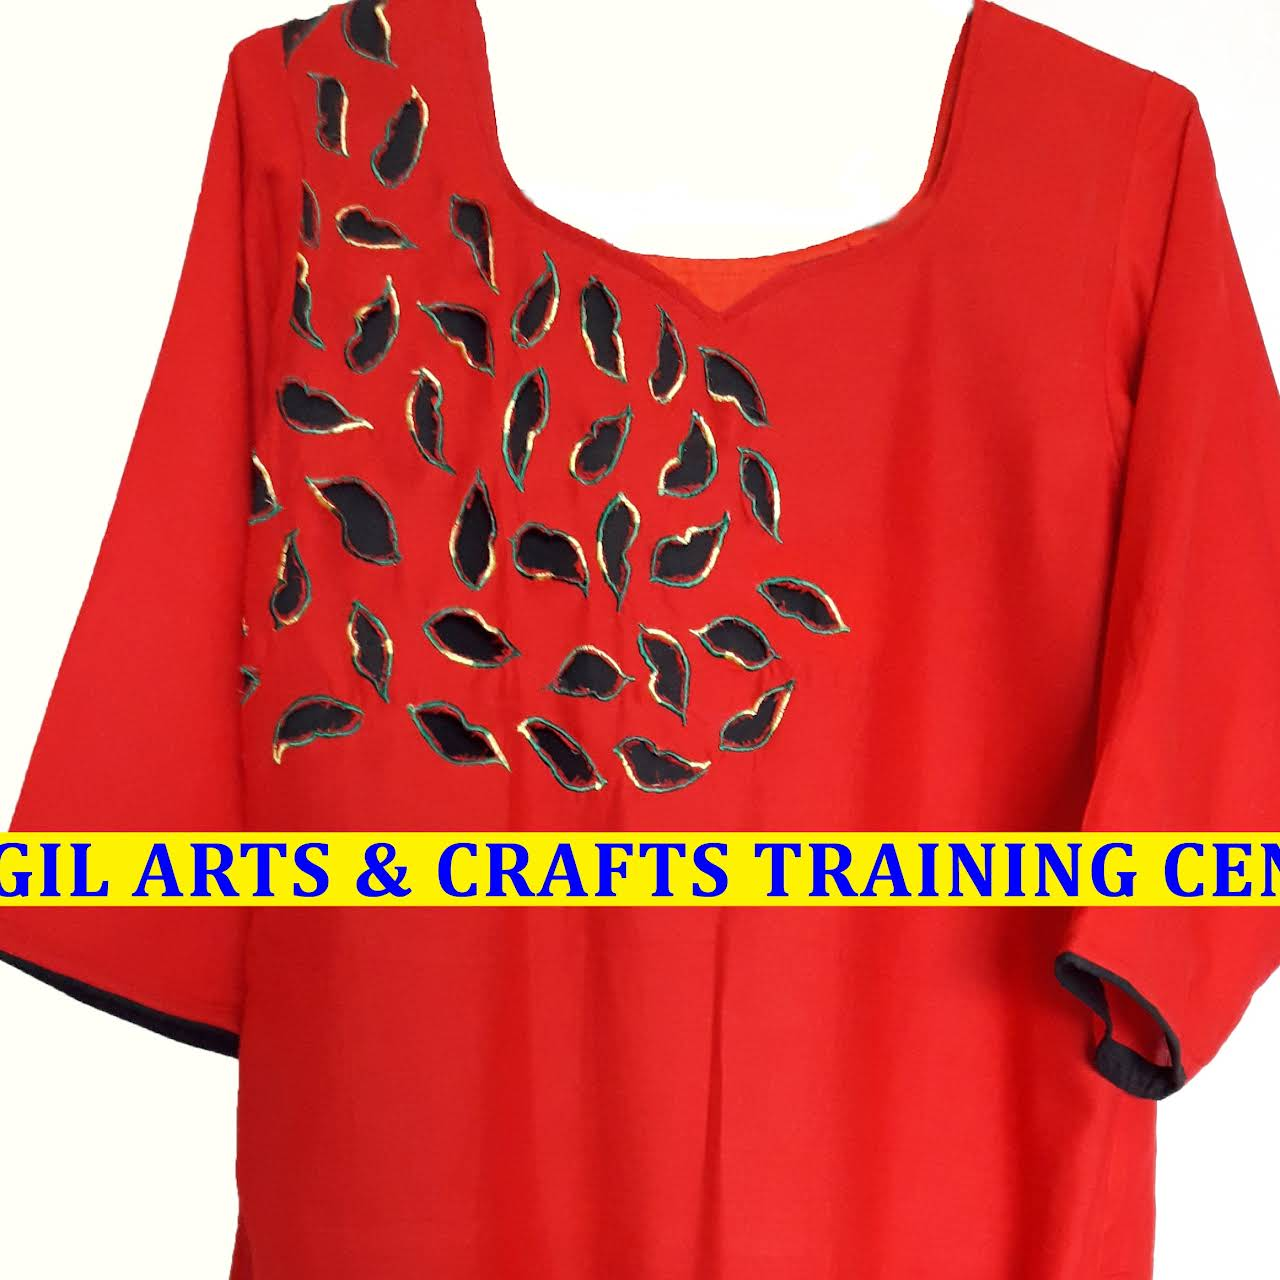 Vigil Arts And Crafts Training Center Fashion Designing Stitching Embroidery Painting Nettipattam Artificial Flower Making Educational Institution In Thiruvananthapuram